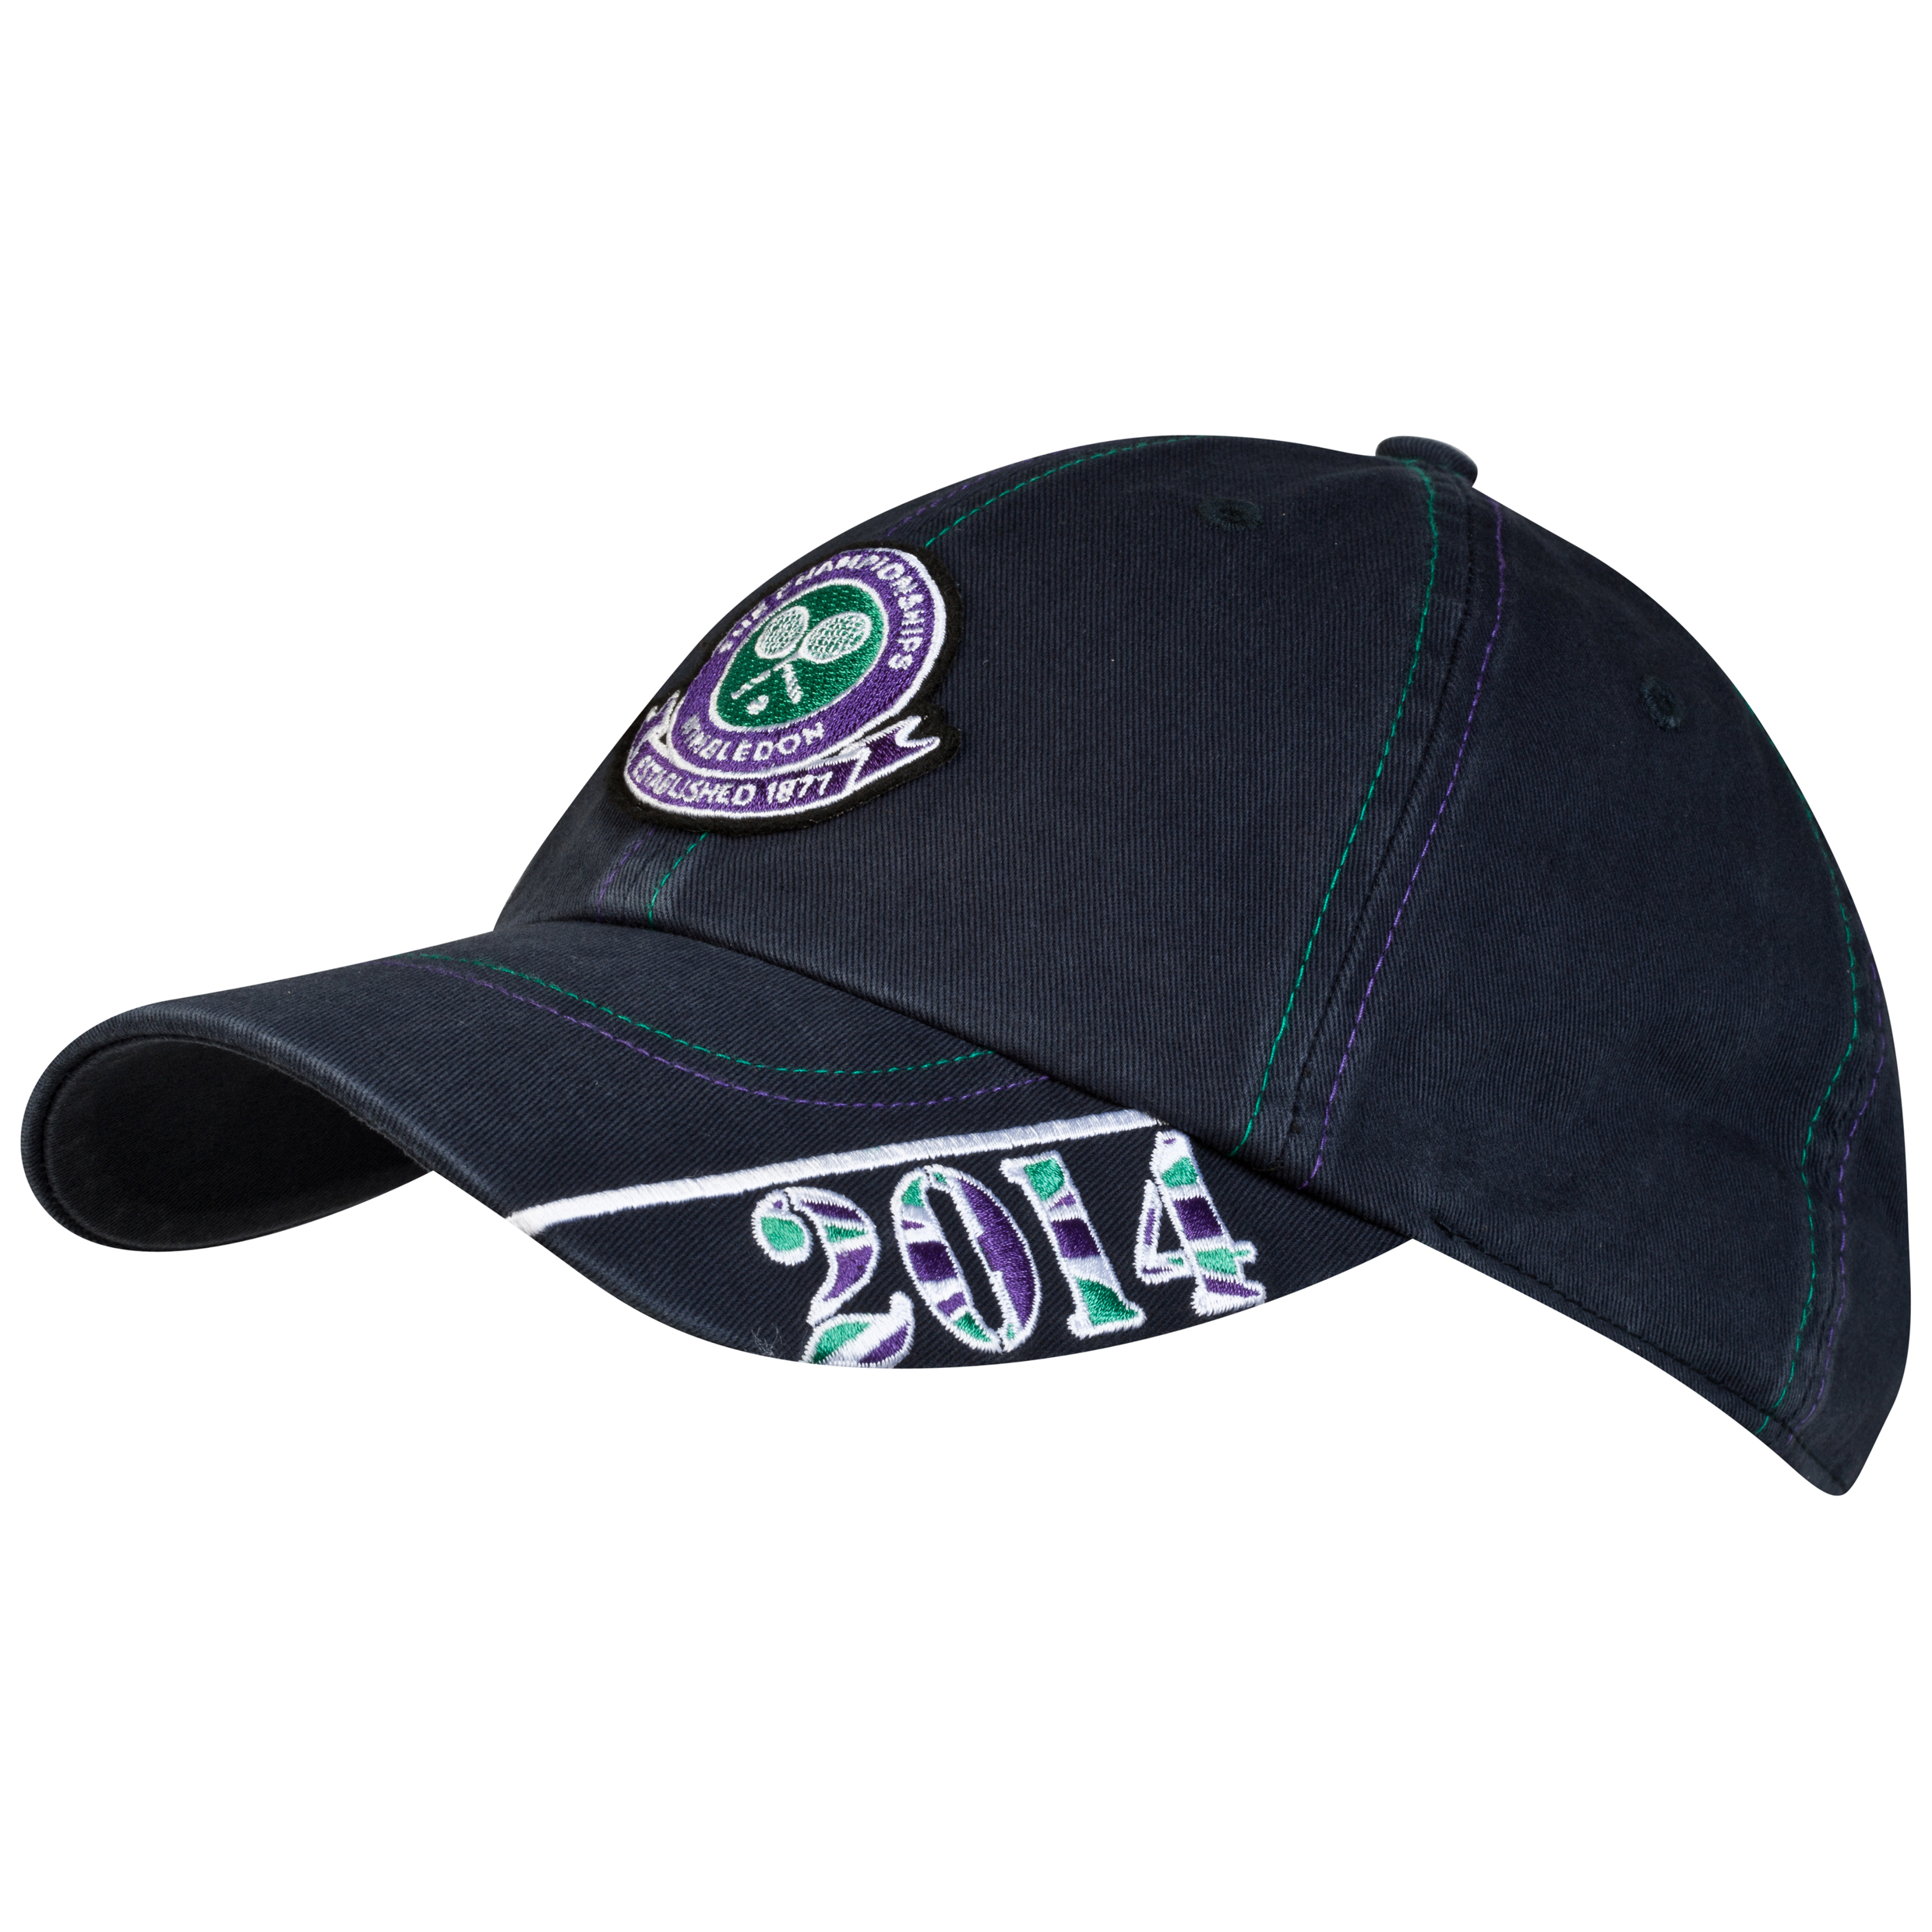 Wimbledon 2014 Dated Embroidered Cap Navy